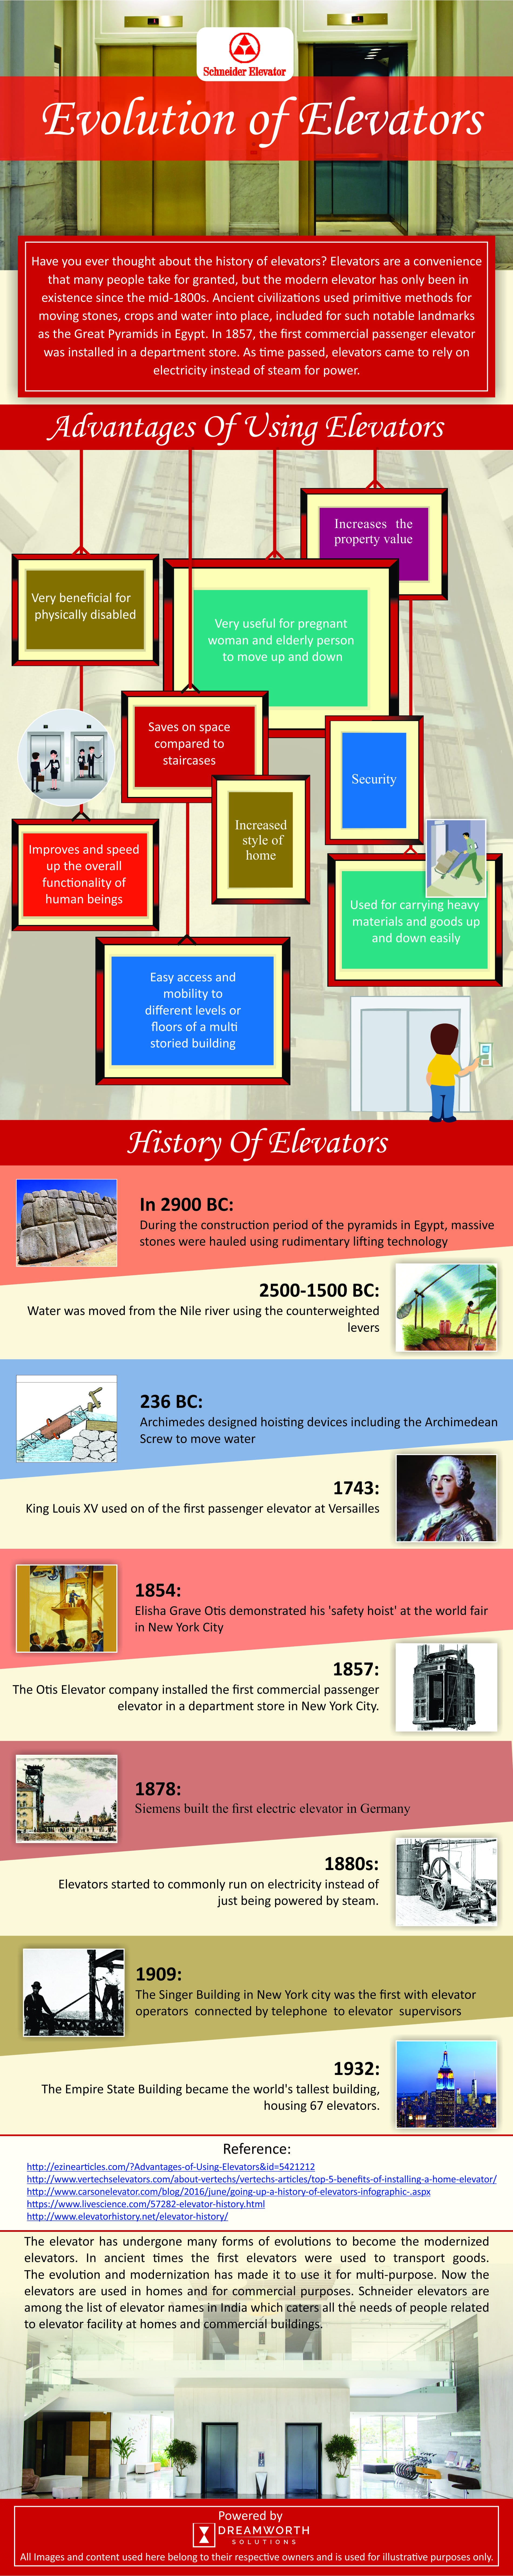 This infographic shows the Evolution of Elevator